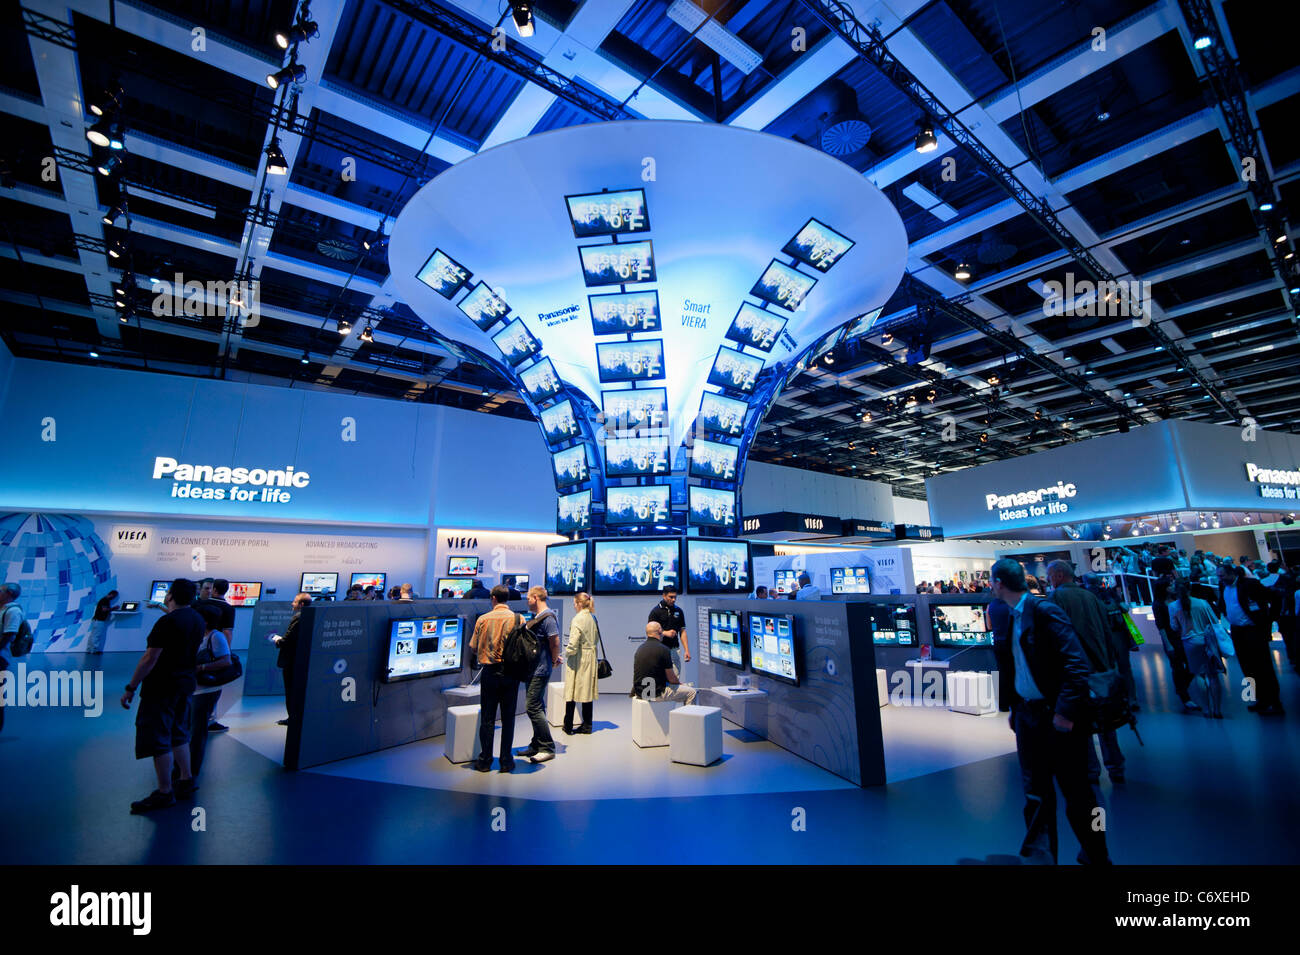 Panasonic stand at IFA consumer electronics trade fair in Berlin Germany 2011 - Stock Image